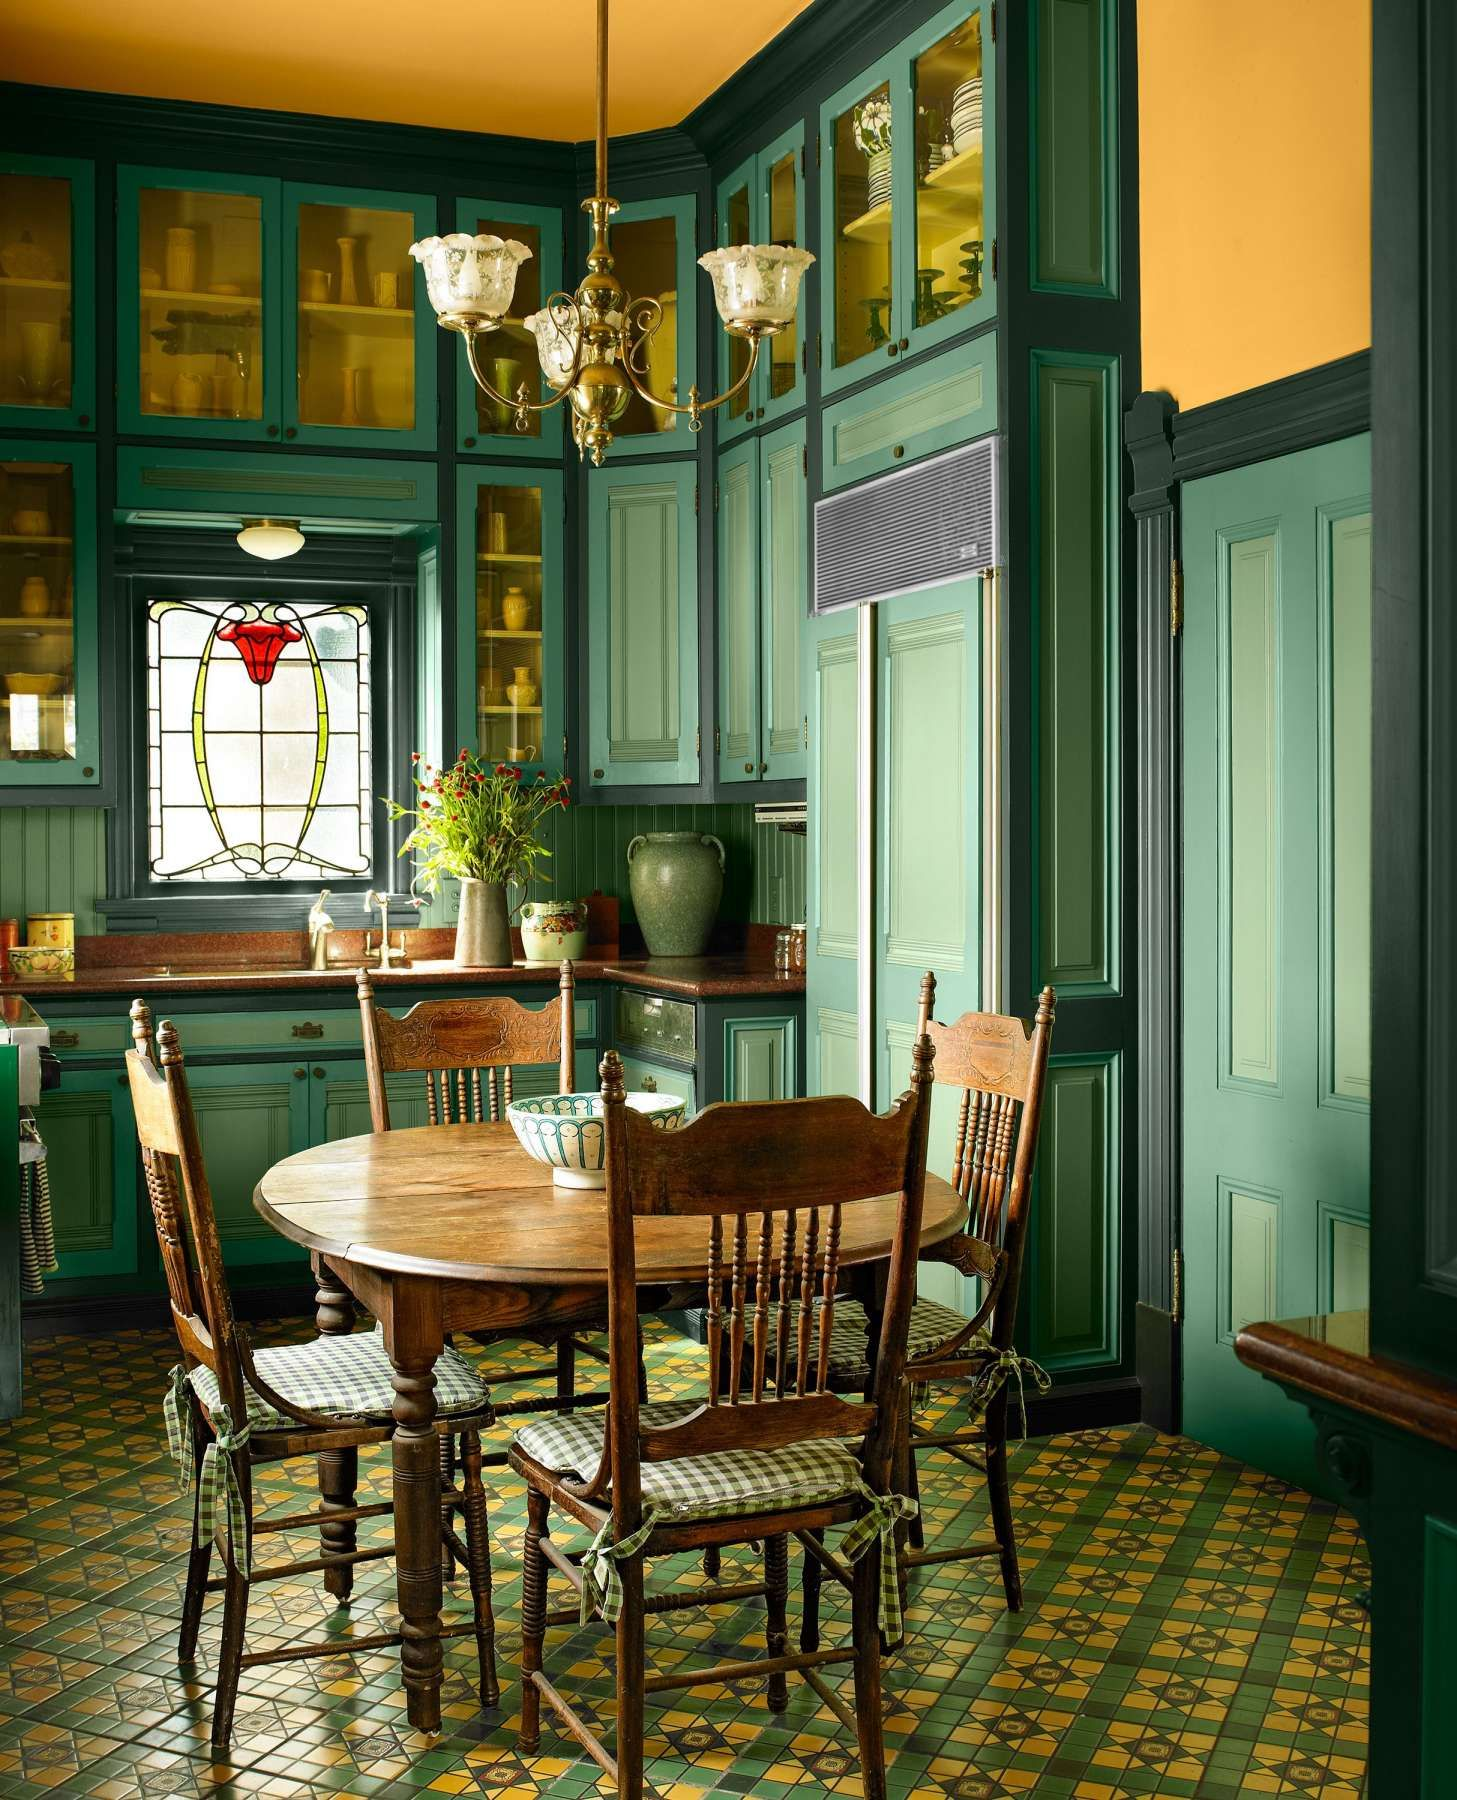 8 extraordinary victorian house interior paint colors on interior paint colors id=82221